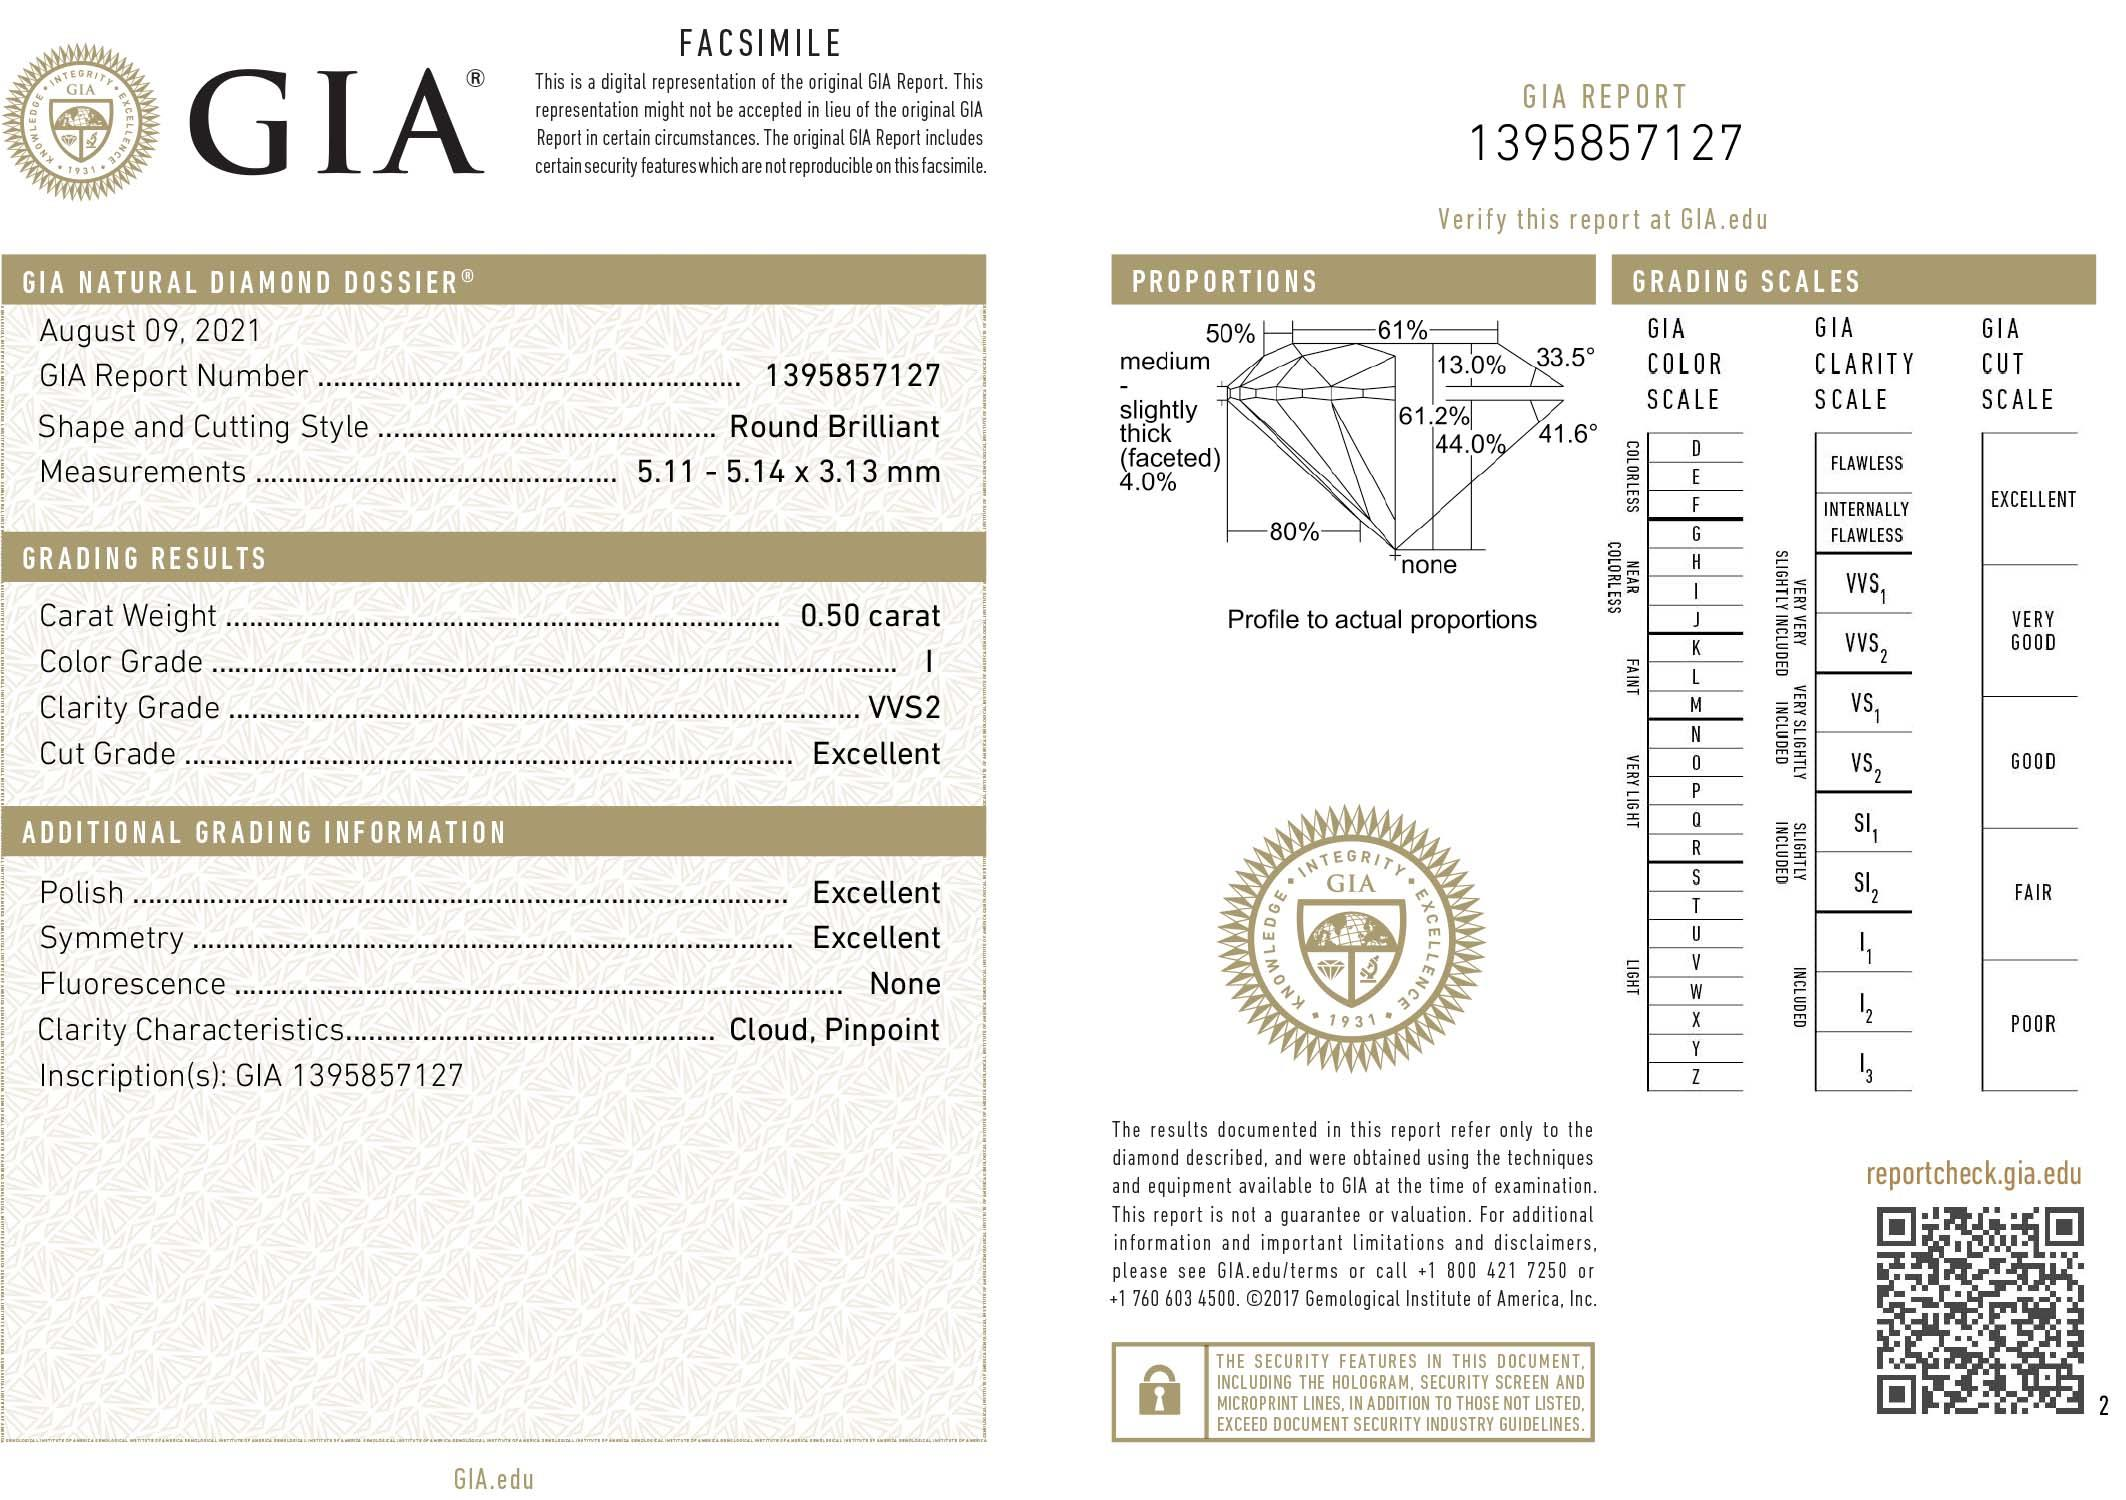 This is a 0.50 carat round shape, I color, VVS2 clarity natural diamond accompanied by a GIA grading report.